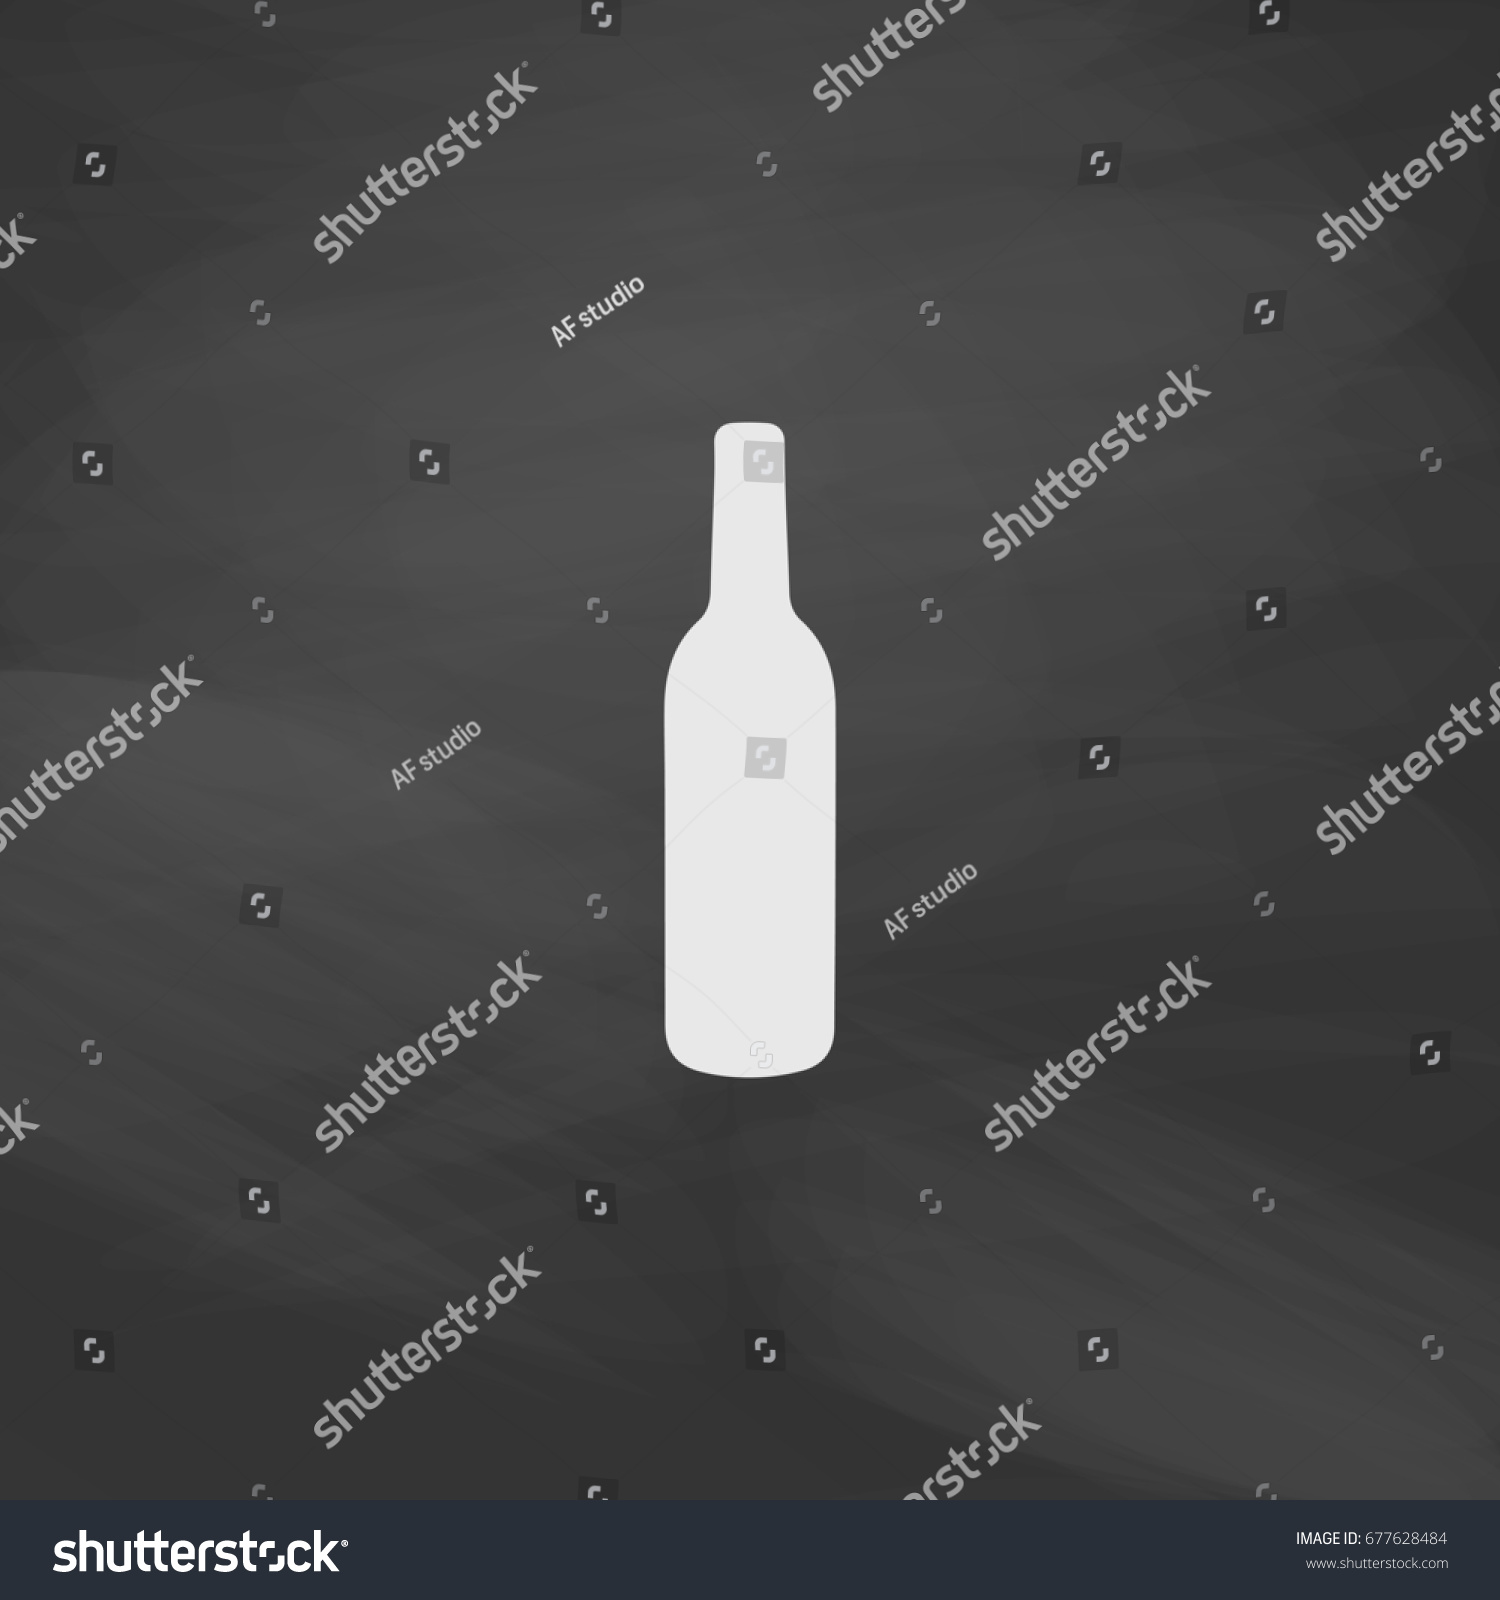 a85f4cb4a7 Liquor bottle. Imitation draw icon with white chalk on blackboard. Flat  Pictogram and School